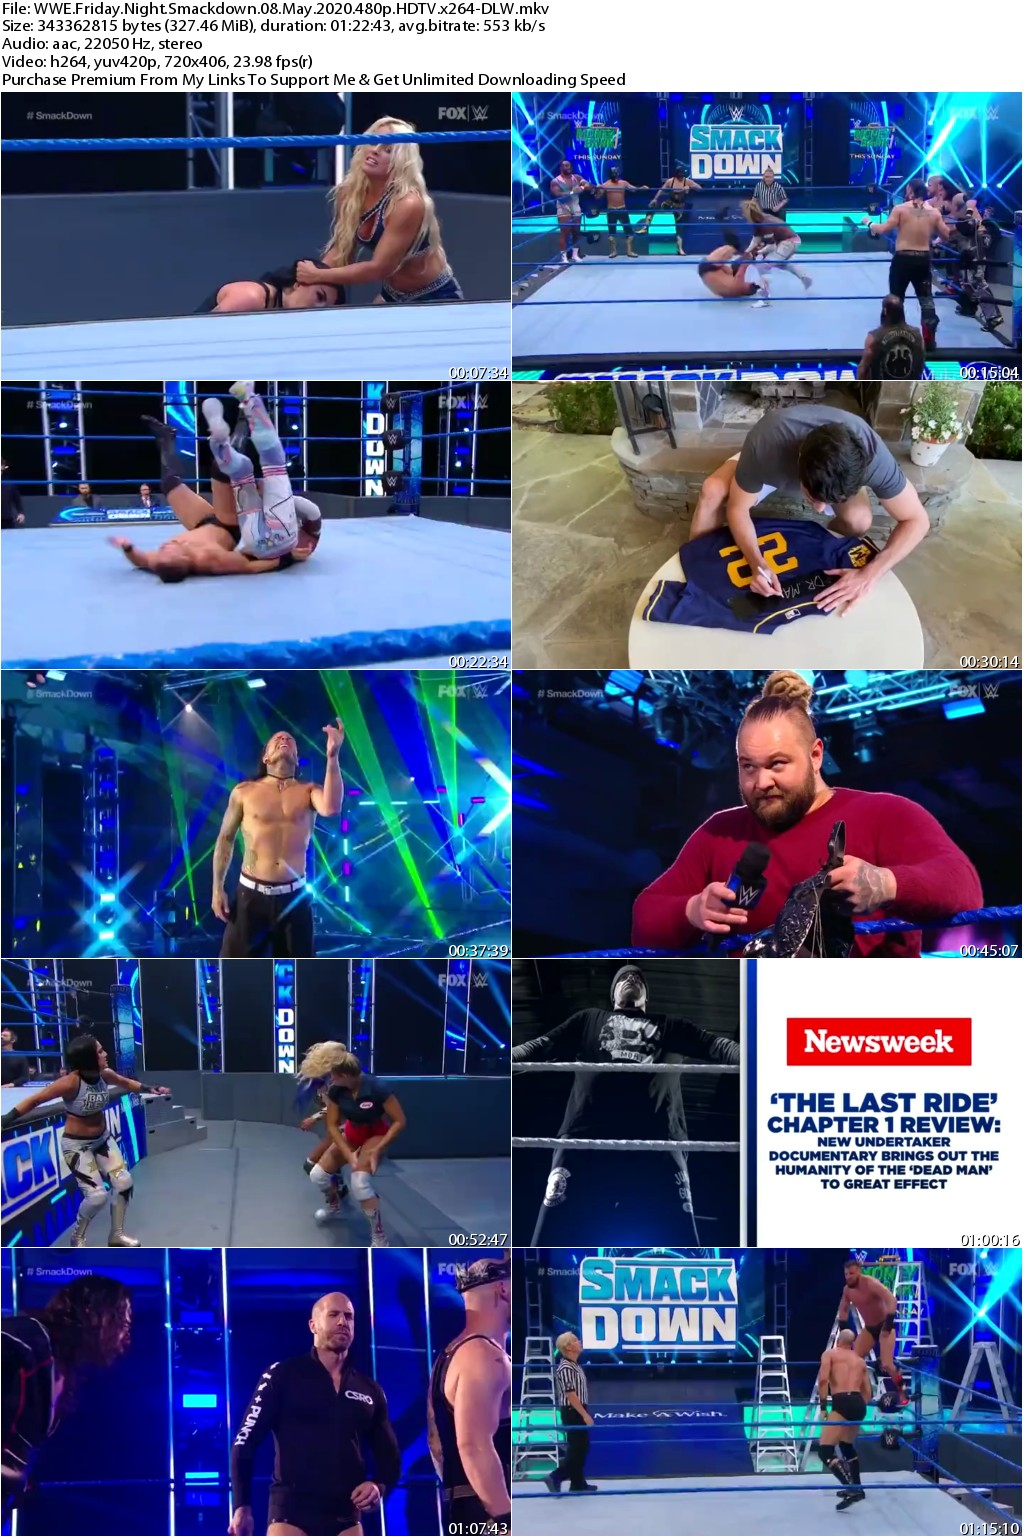 WWE Friday Night Smackdown 08 May 2020 480p HDTV x264-DLW